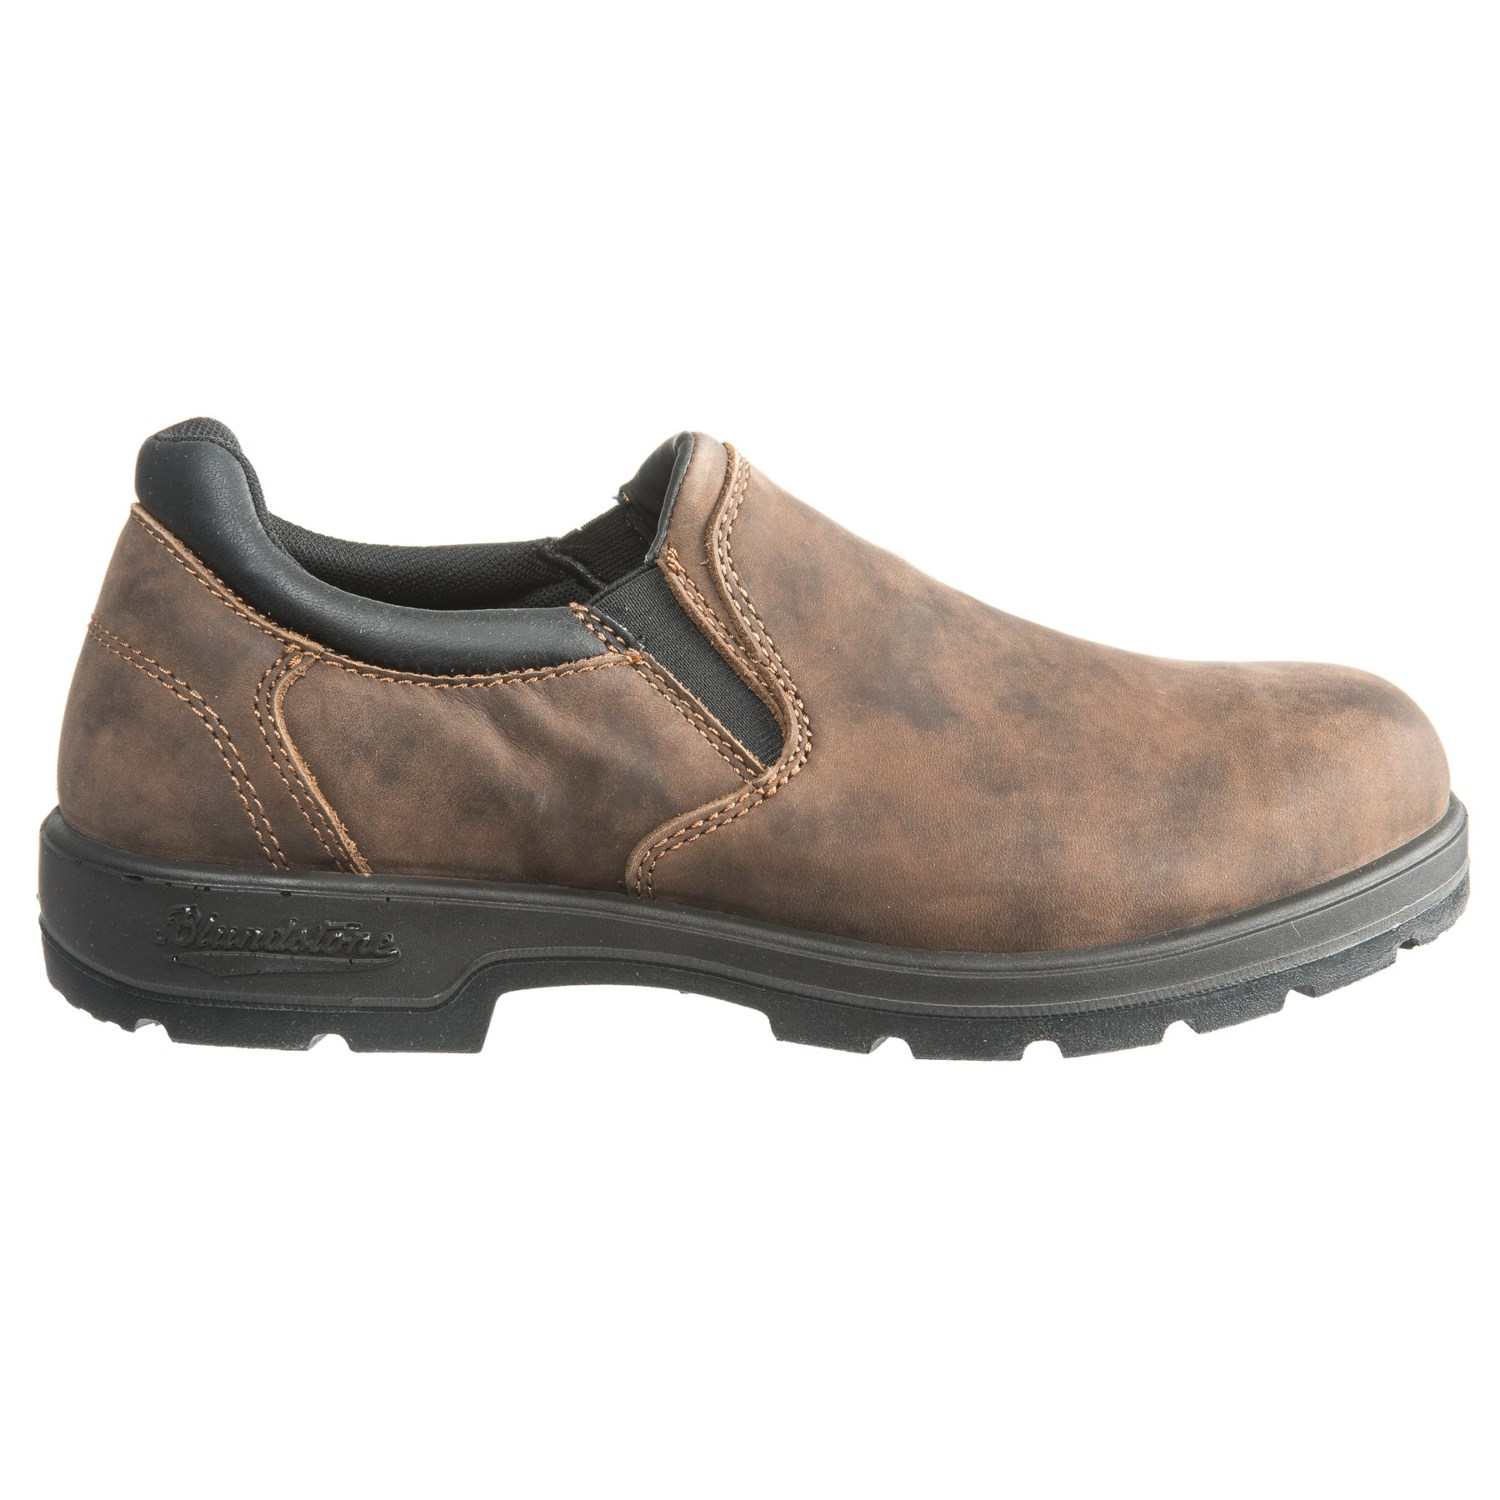 Blundstone Casual Slip-On Leather Shoes (For Men)